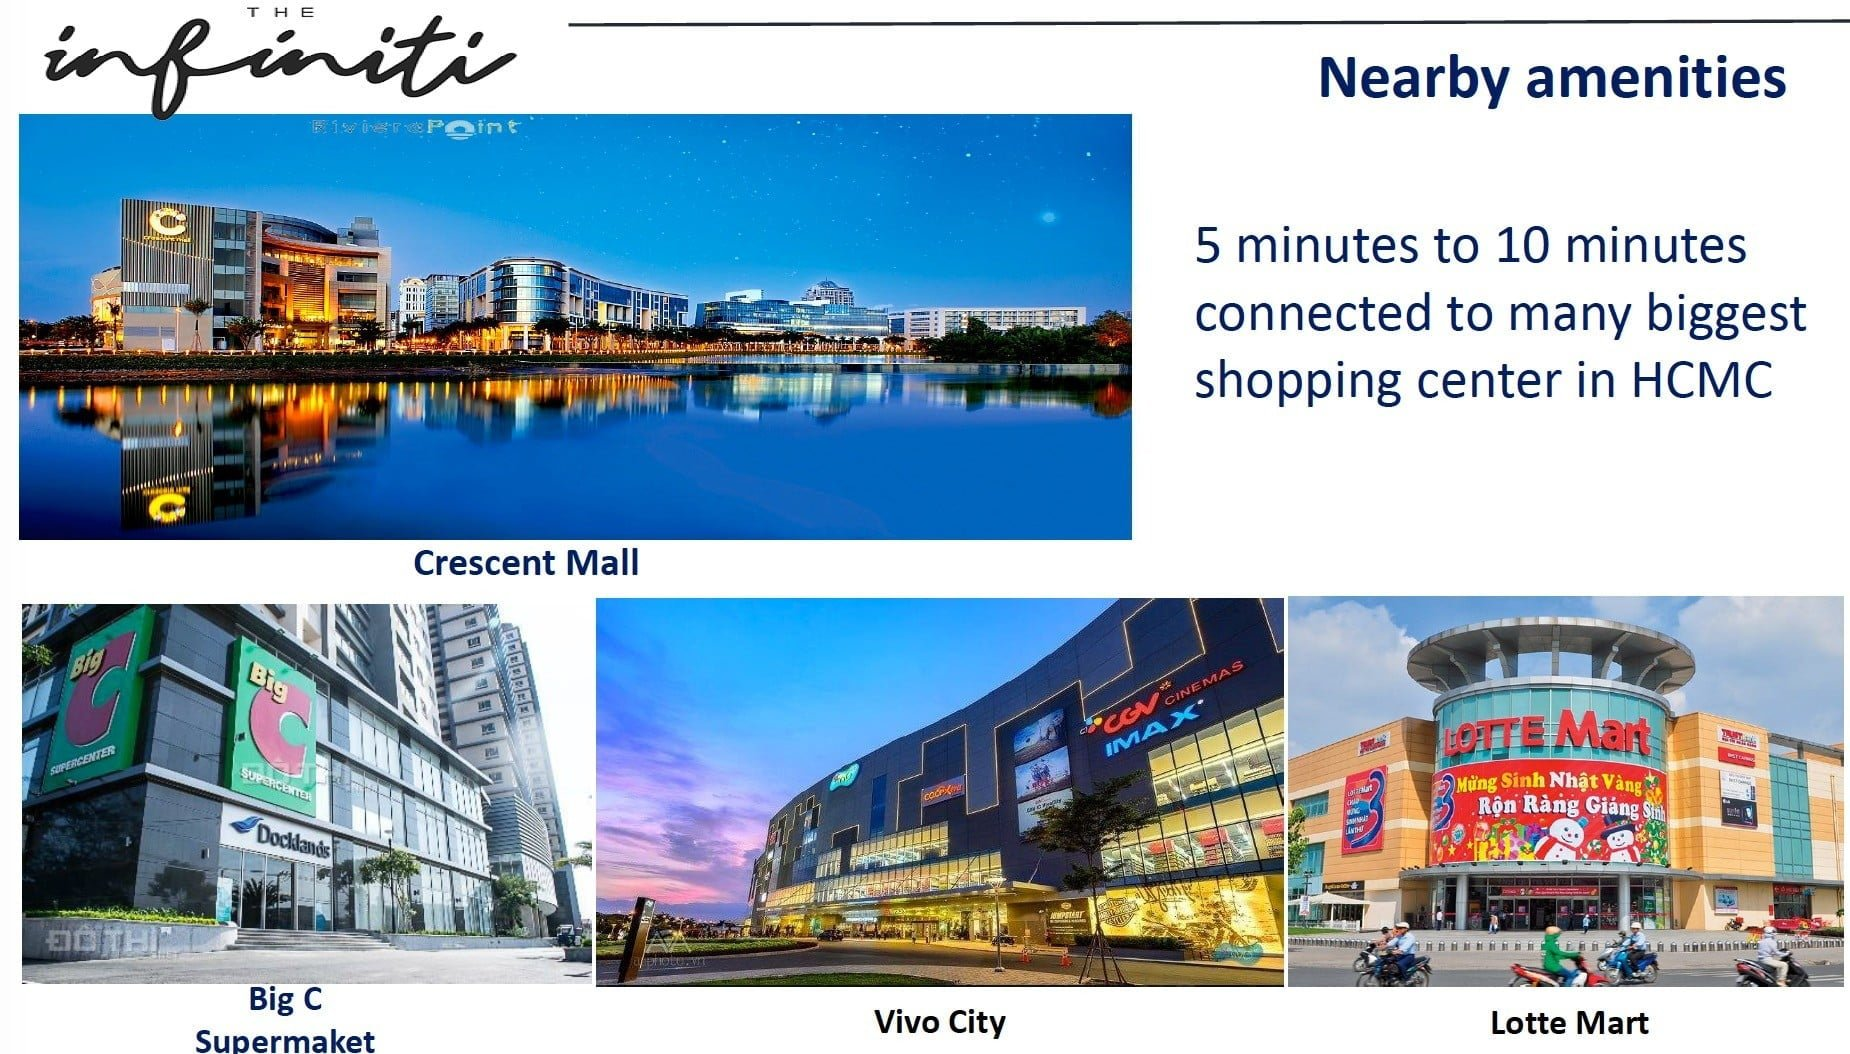 The Infiniti Vietnam Shopping mall Nearby